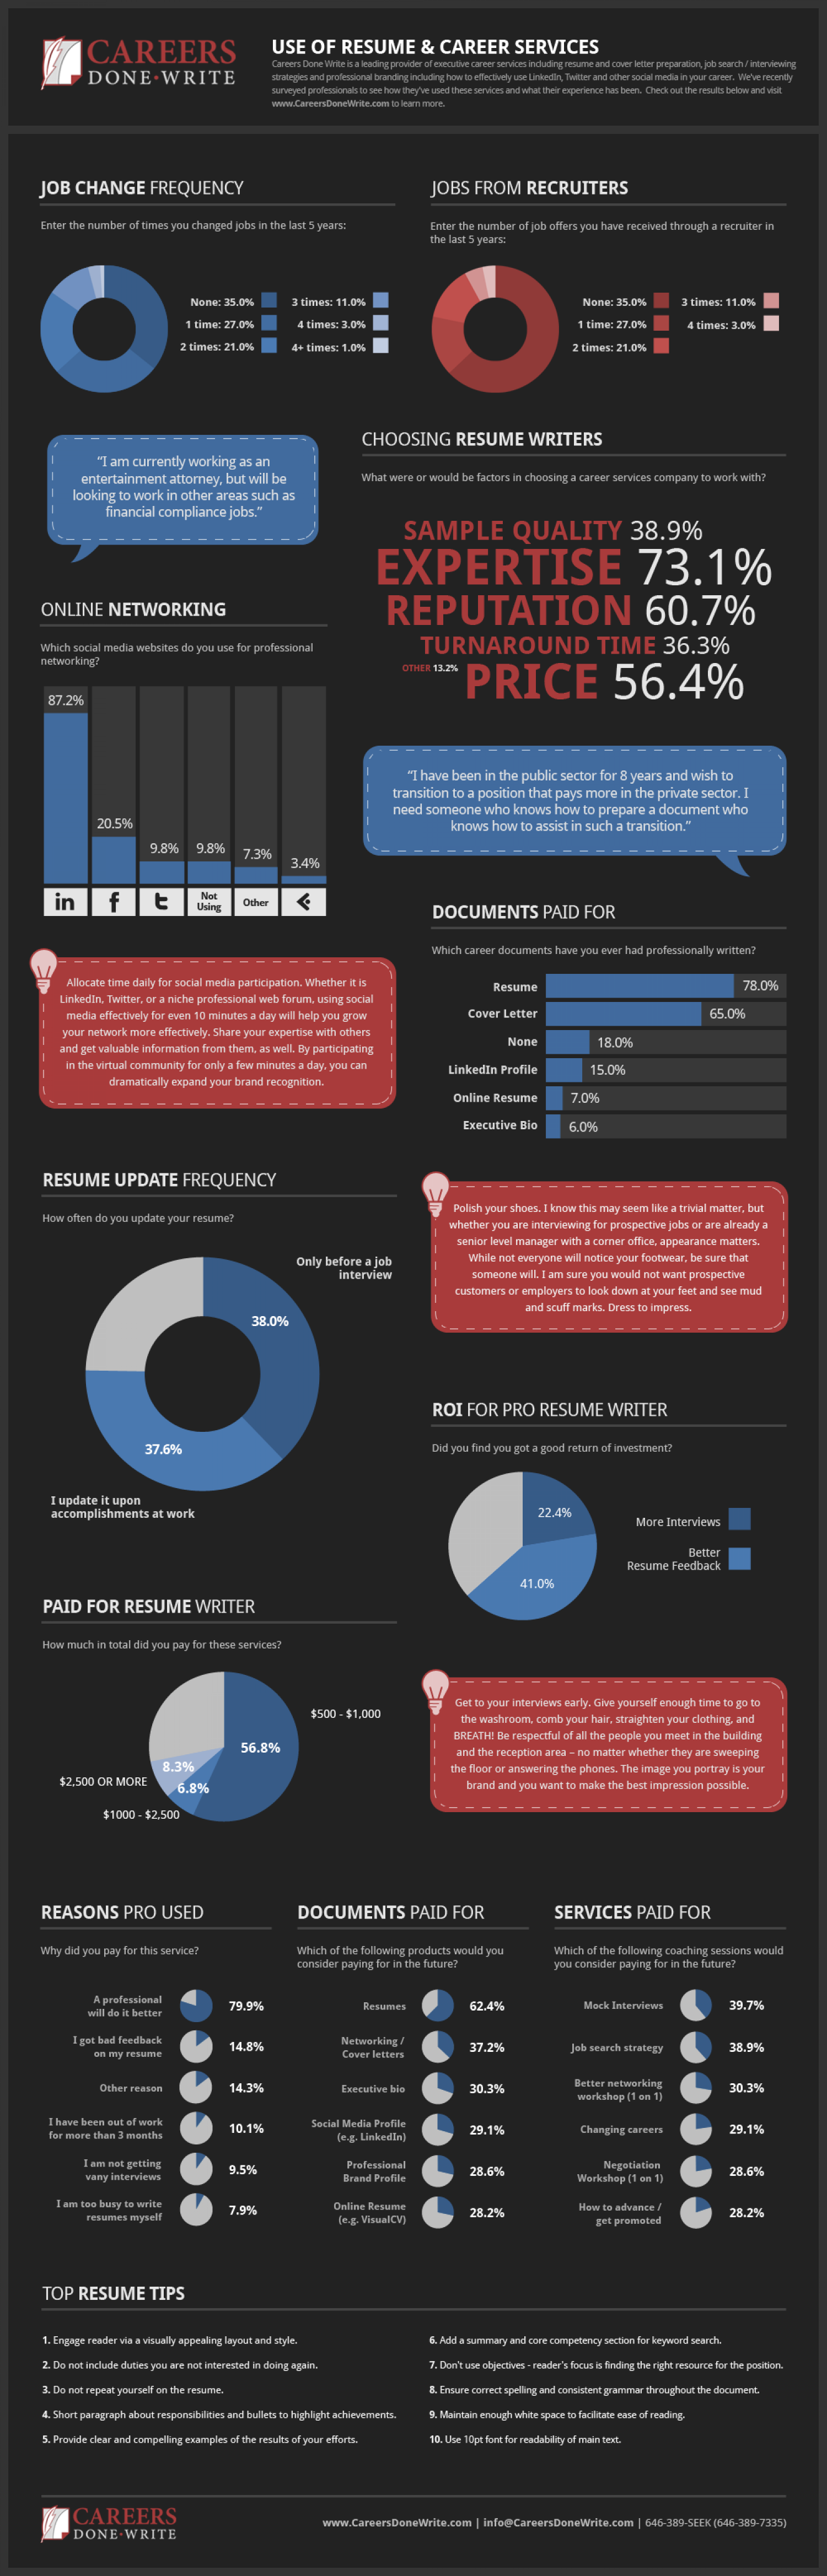 Use of Resume and Career Services Infographic